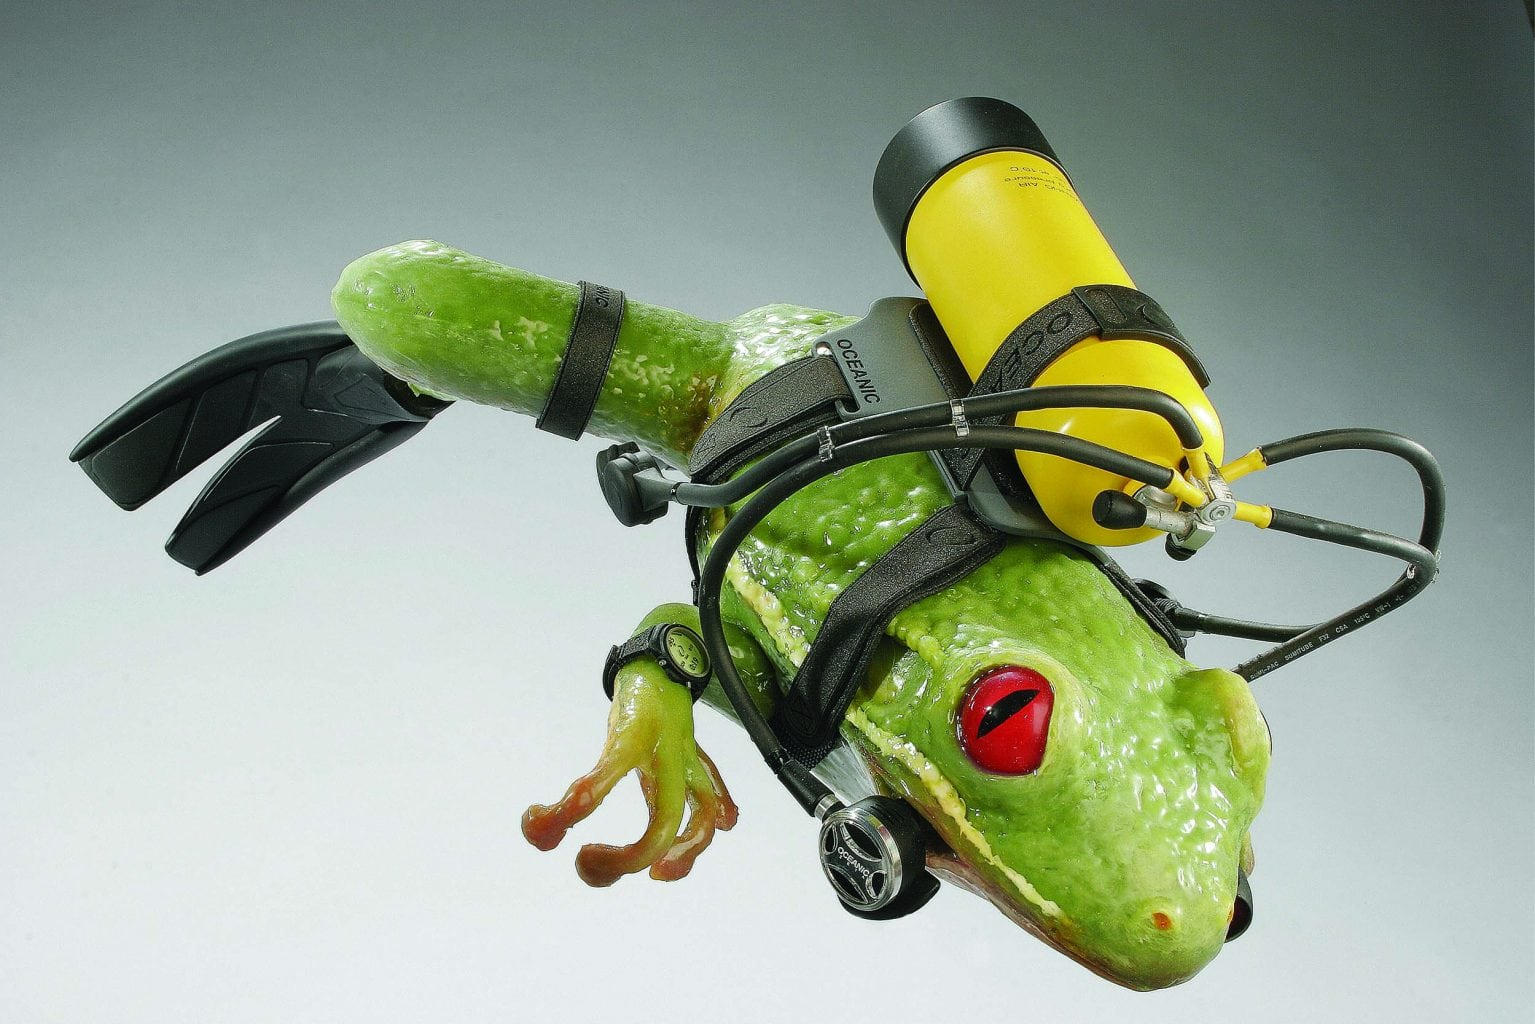 Frog model with diving equipment on